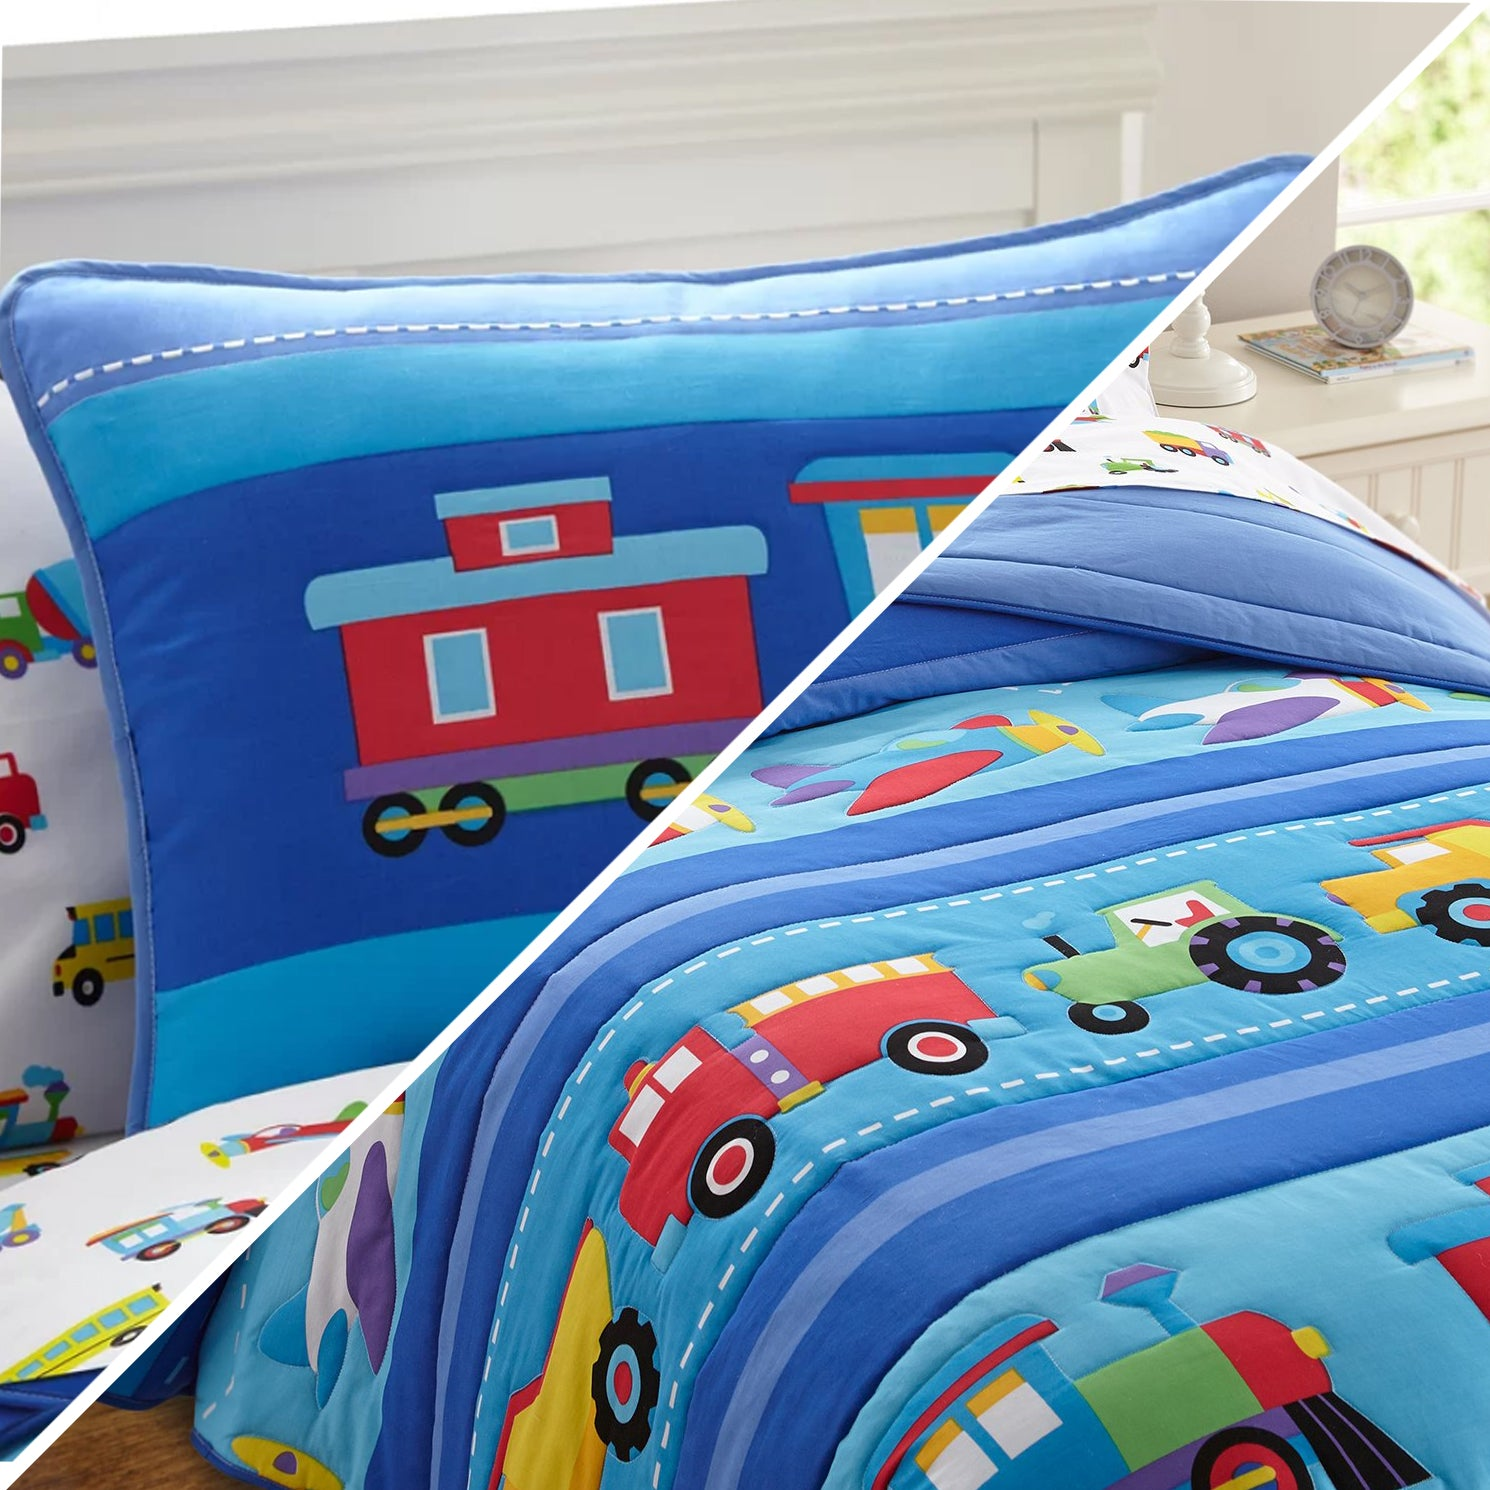 Trains, Planes and Trucks Comforter and Sham